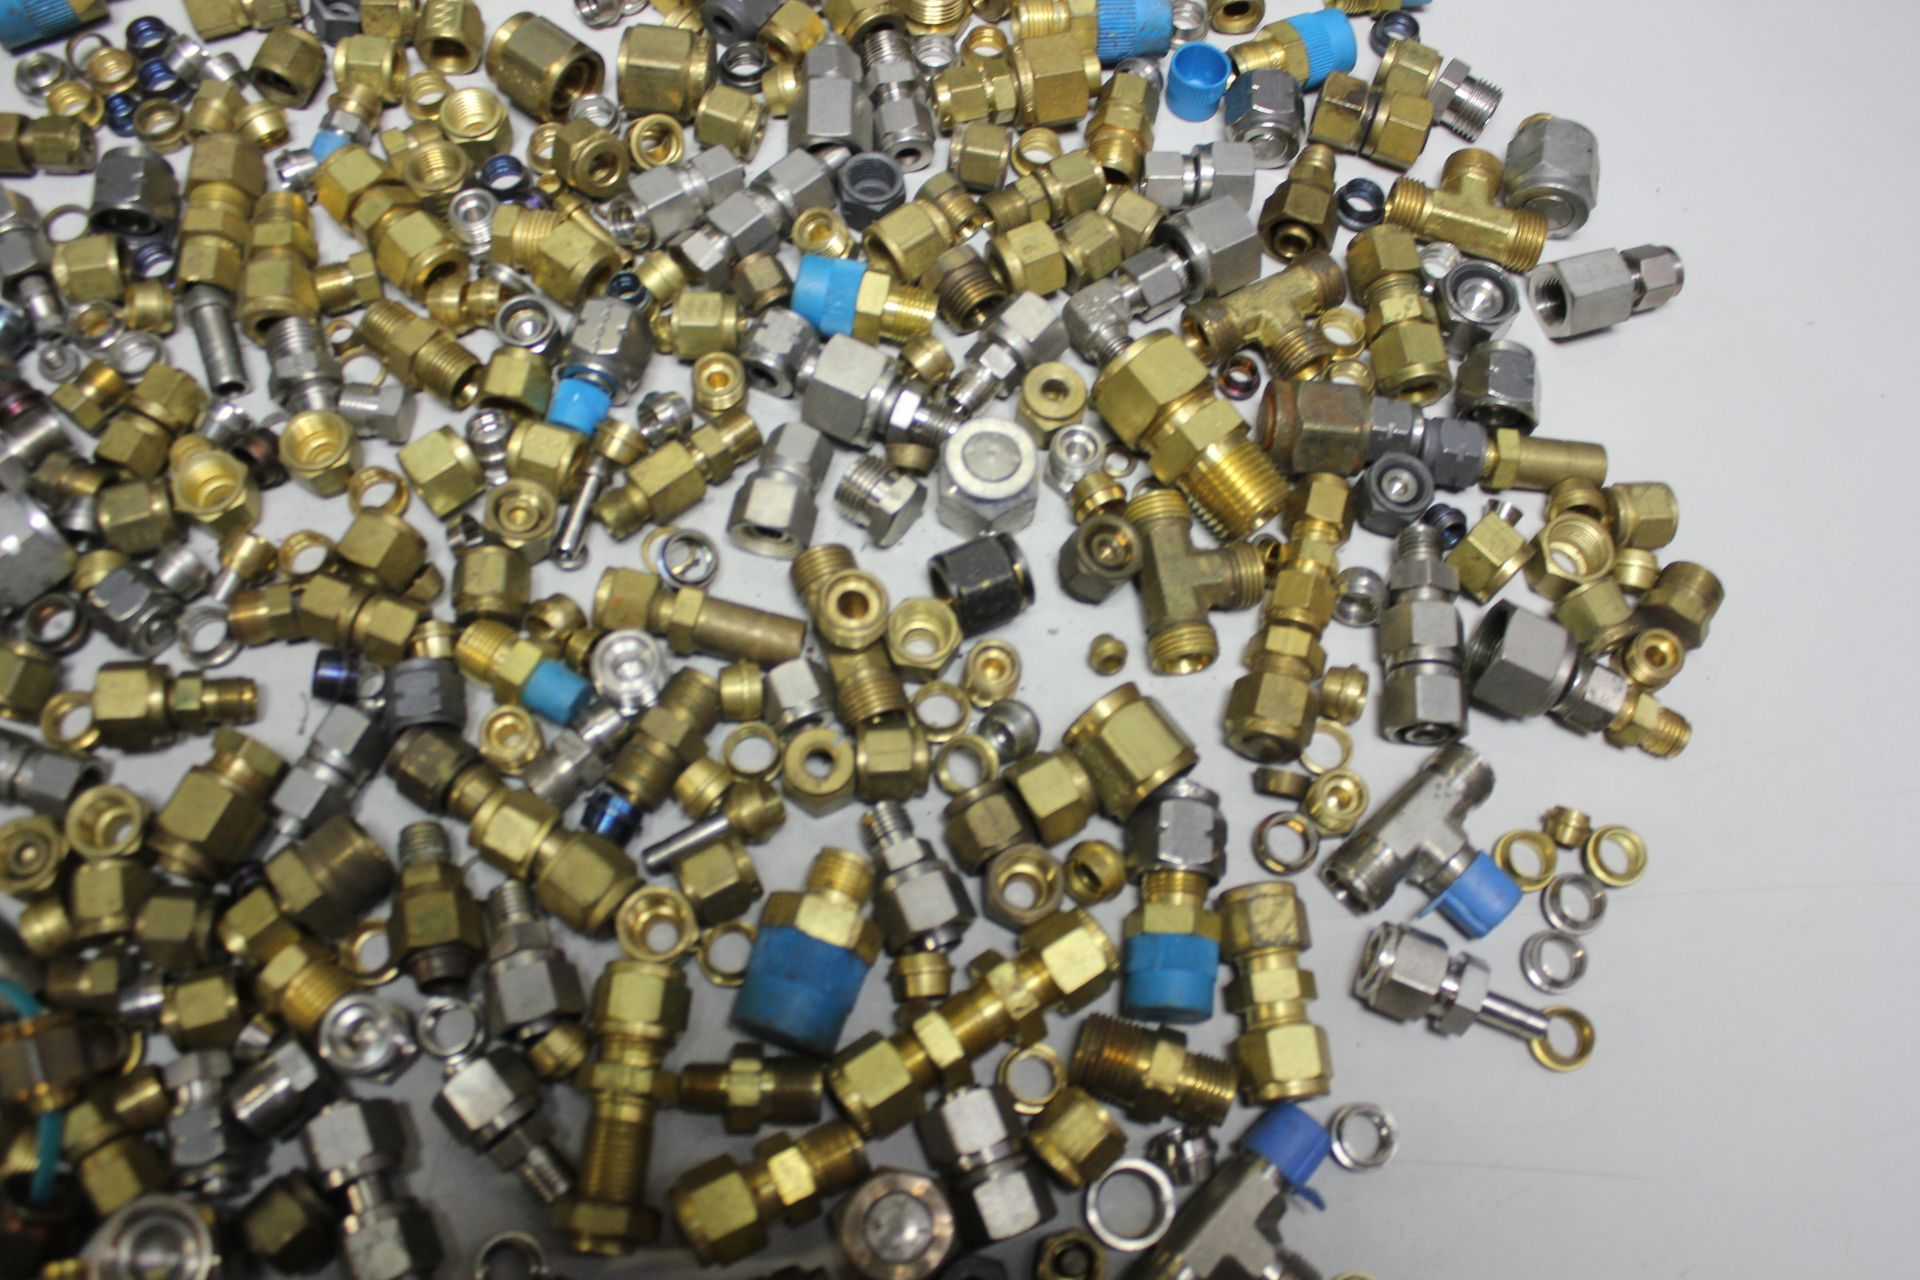 LOT OF COMPRESSION FITTINGS - SWAGELOK, CAJON, ETC - Image 7 of 8